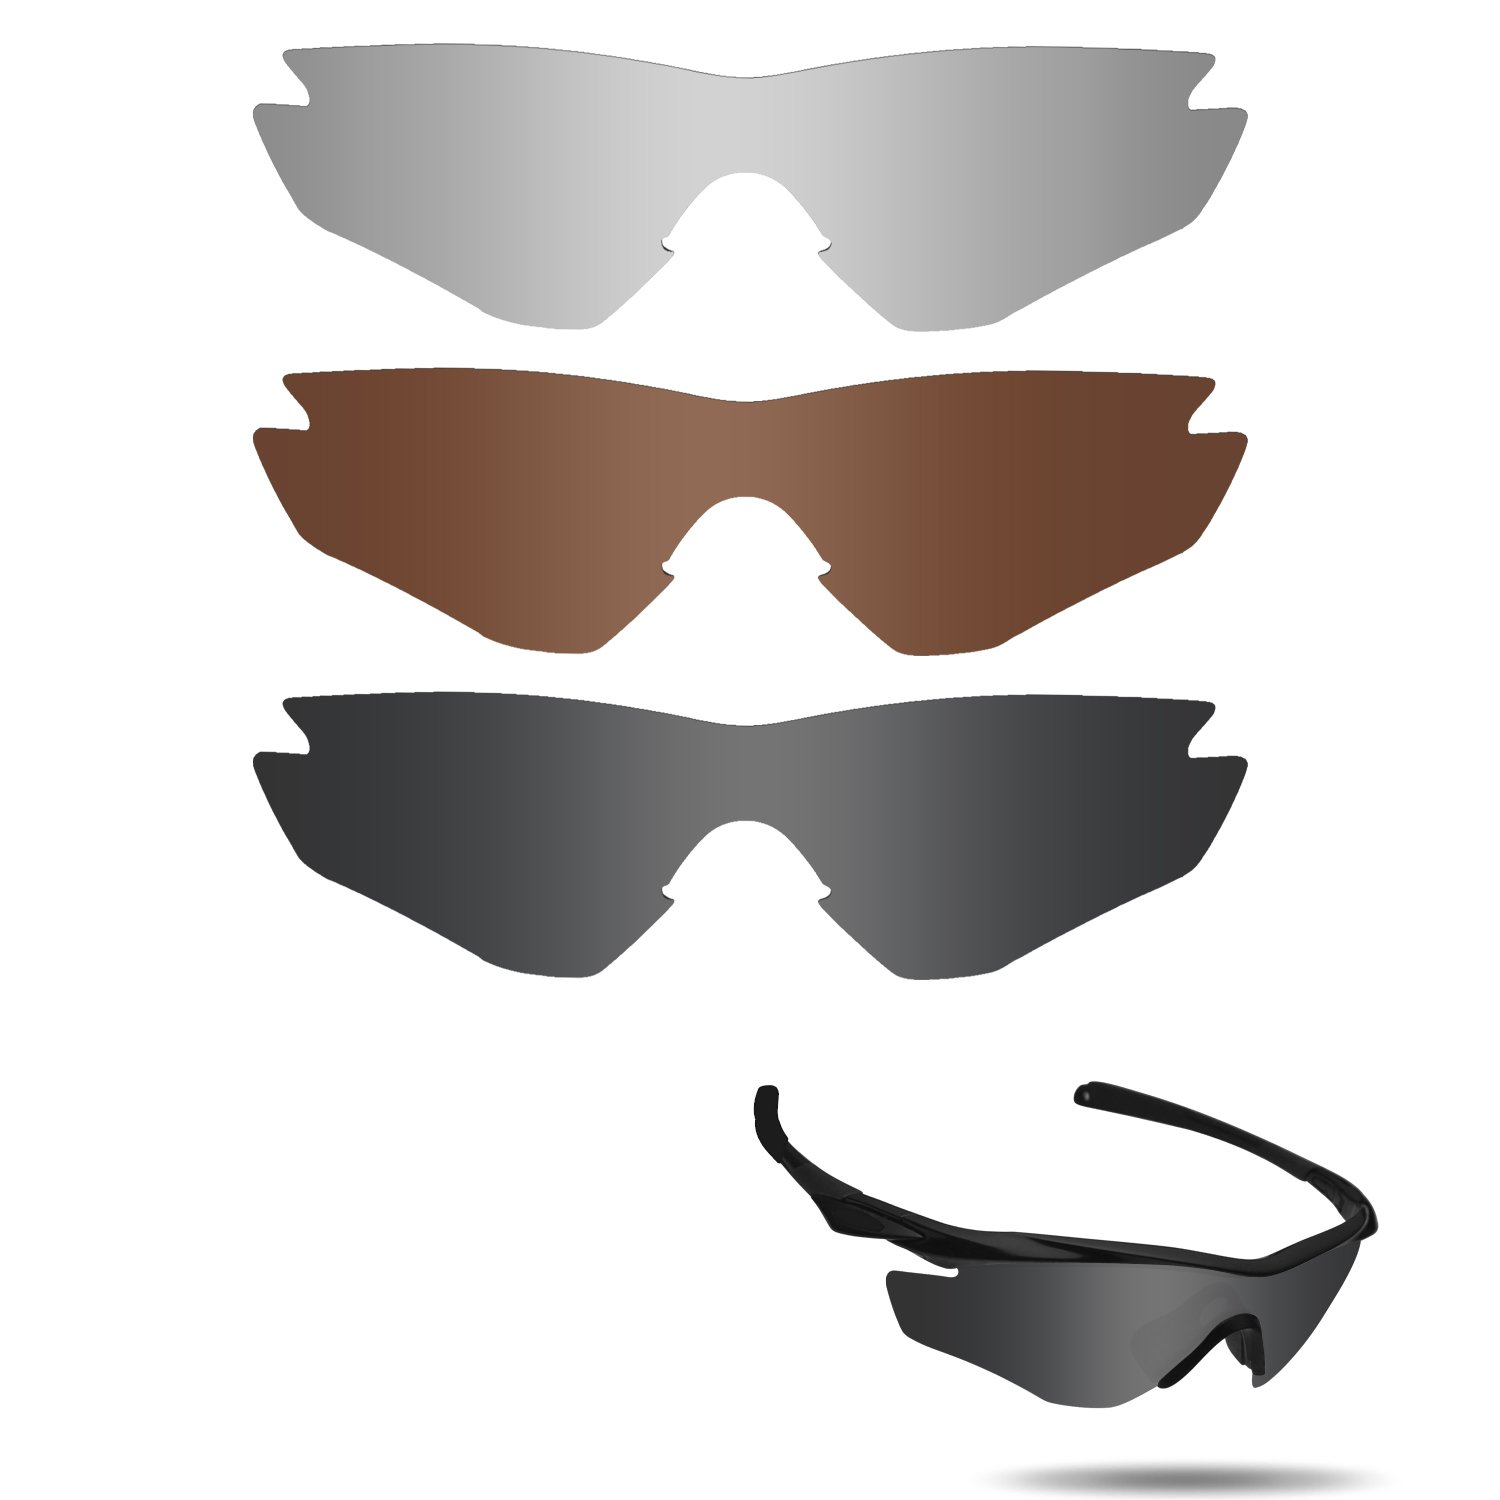 【2019正規激安】 fiskr anti-saltwater偏光交換レンズOakley Radar & Path Vented fiskr 3ペアパック B0711LDVHT Stealth Bronze Black & Metallic Silver & Bronze Brown, 牡鹿郡:bc89af52 --- vilazh.indexis.ru